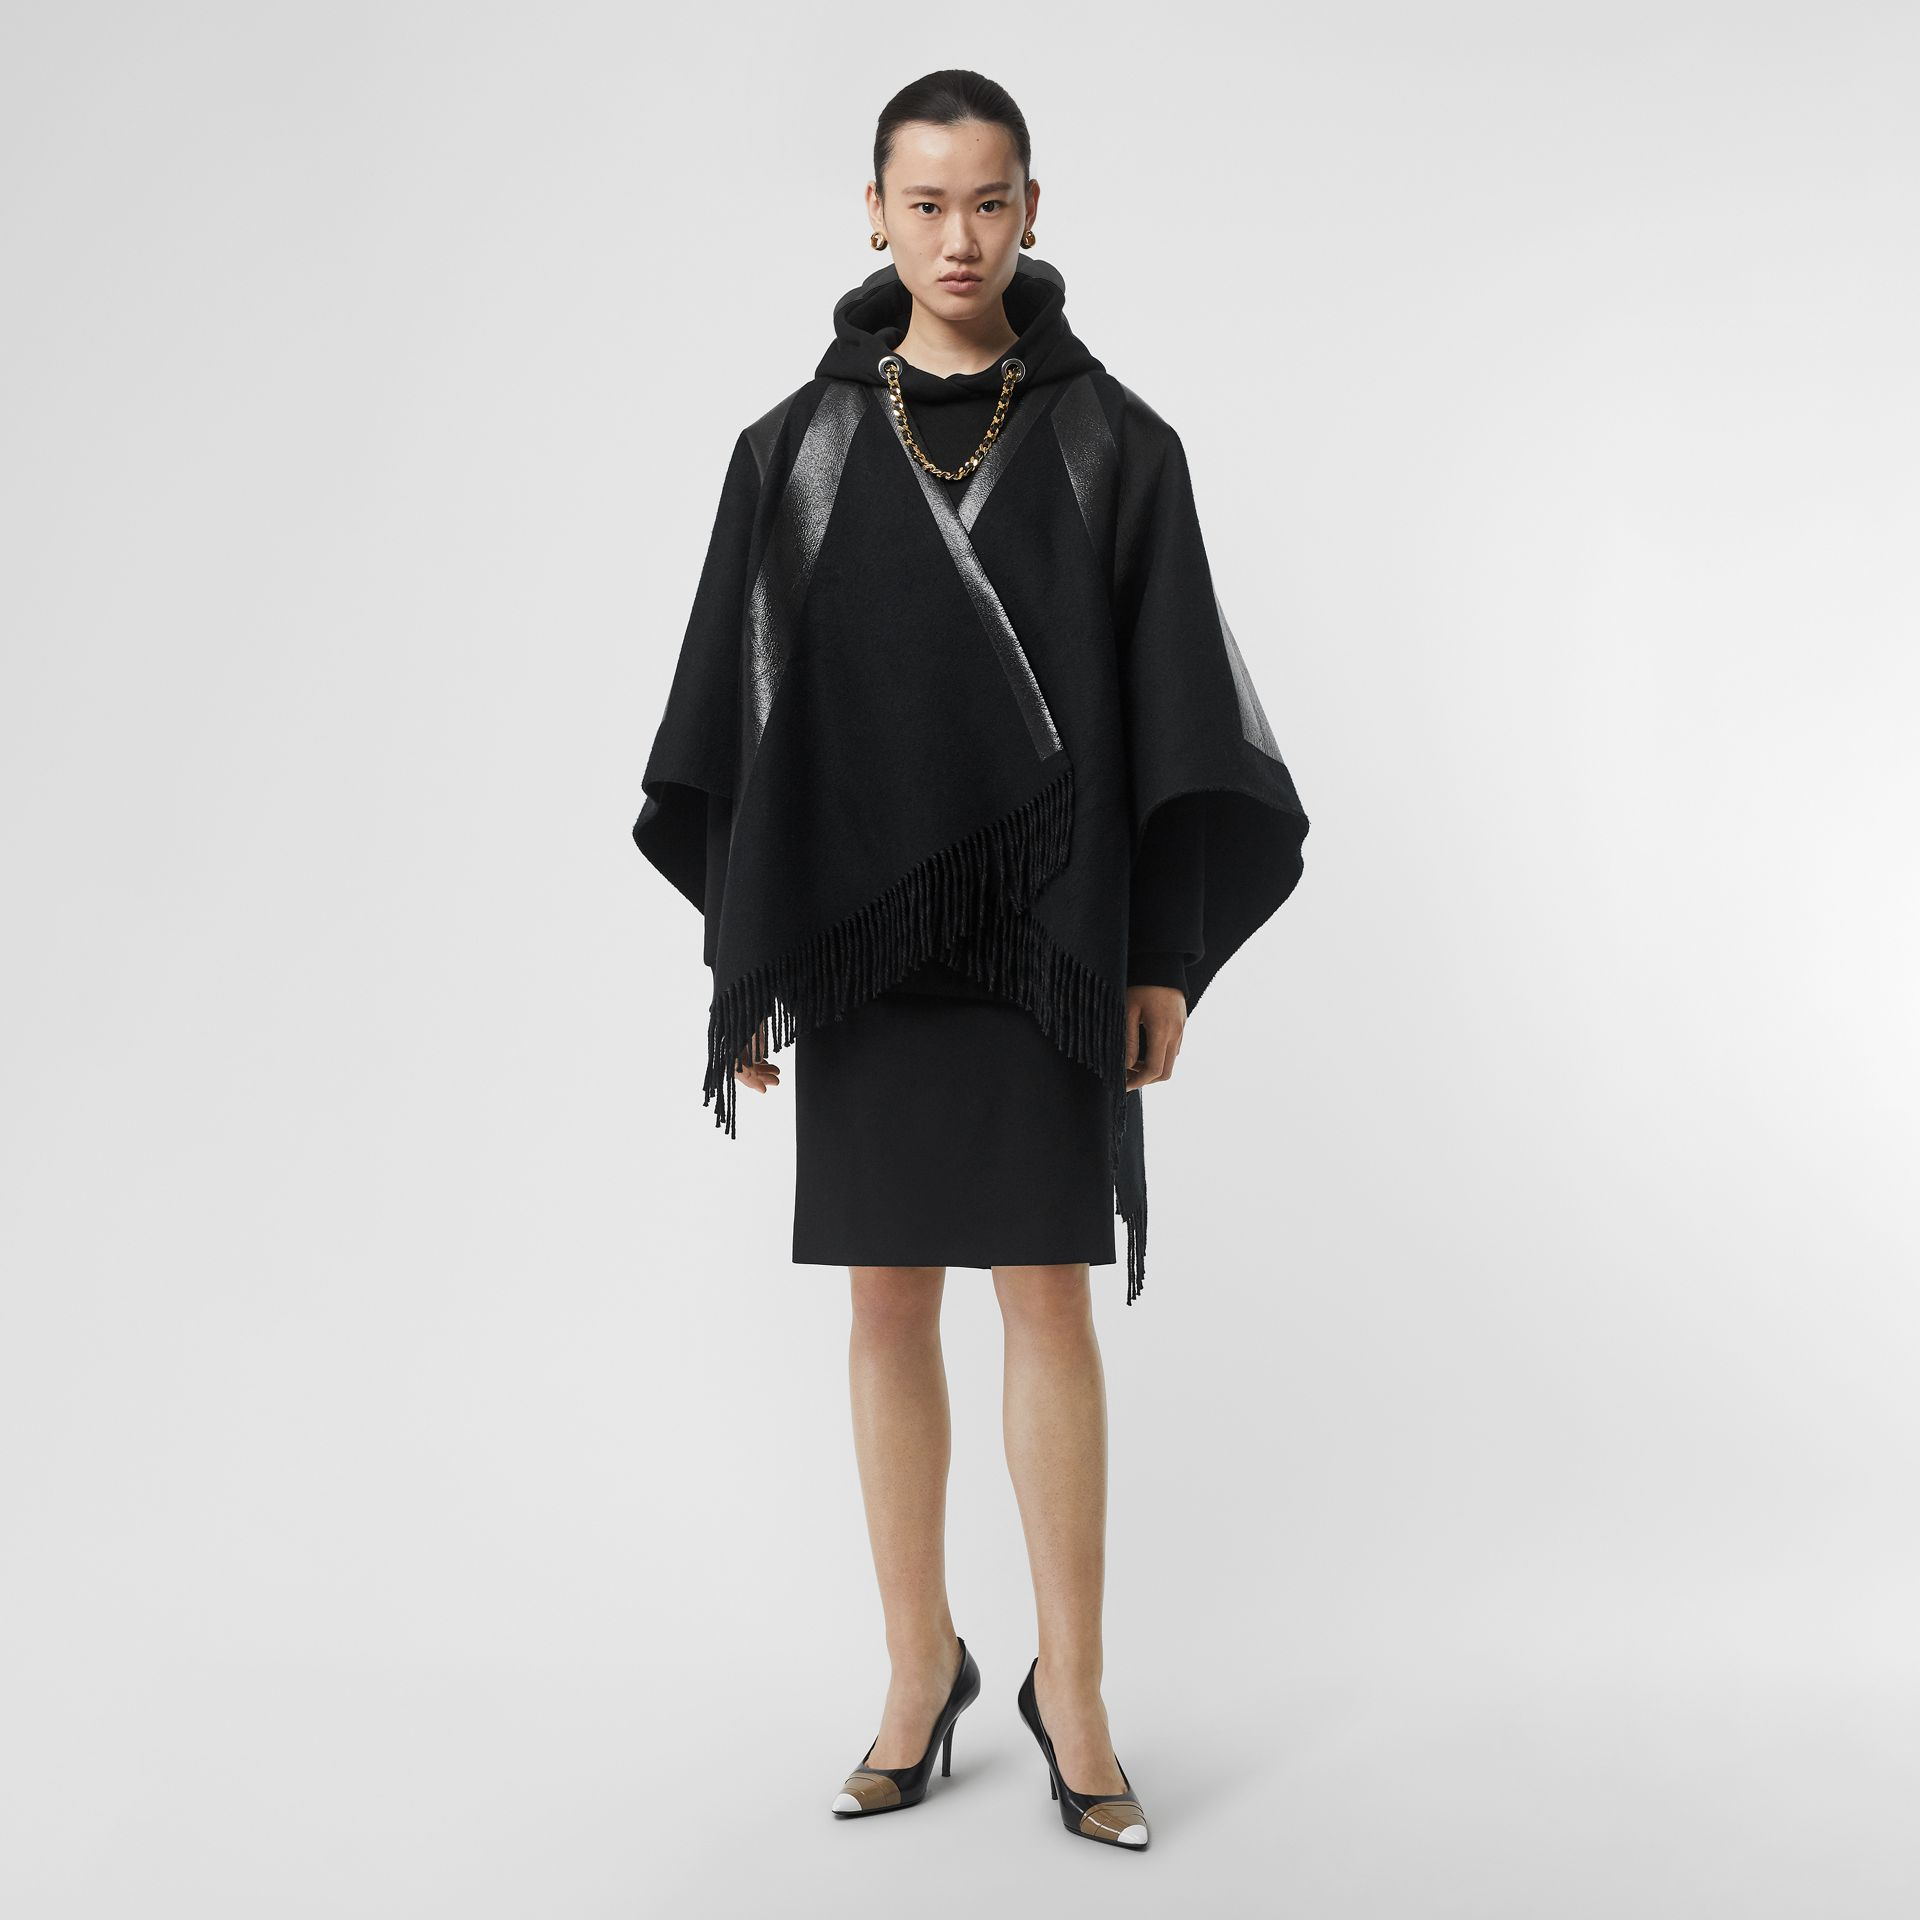 Union Jack Print Wool Cashmere Cape in Black - Women | Burberry - gallery image 0